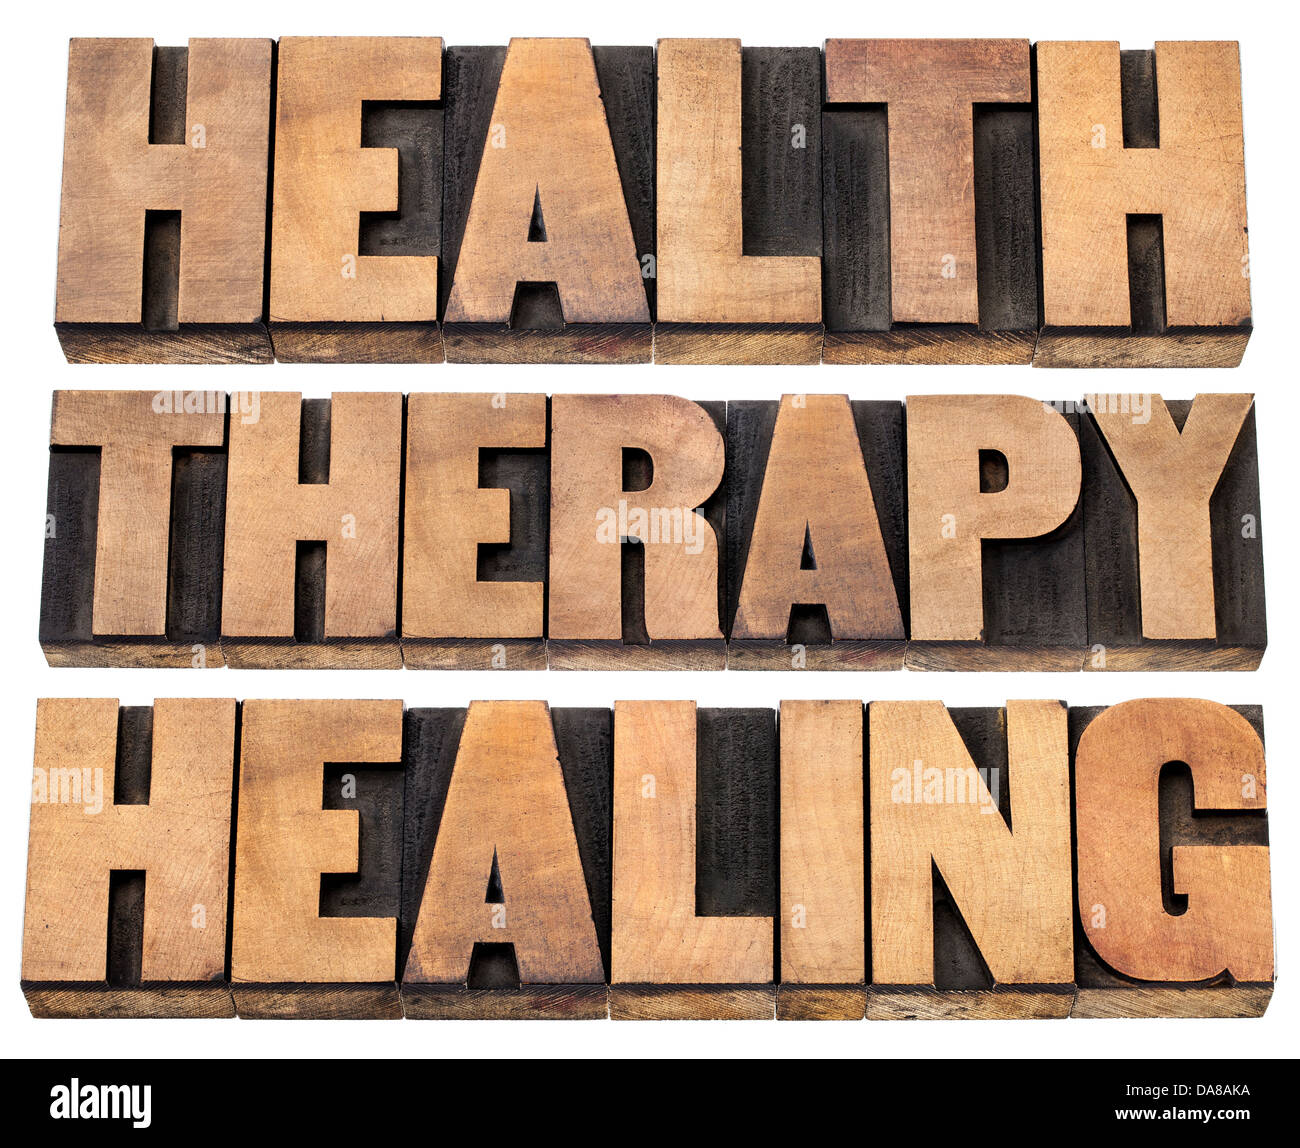 health, therapy and healing words - a collage of isolated text in vintage letterpress wood type printing blocks - Stock Image